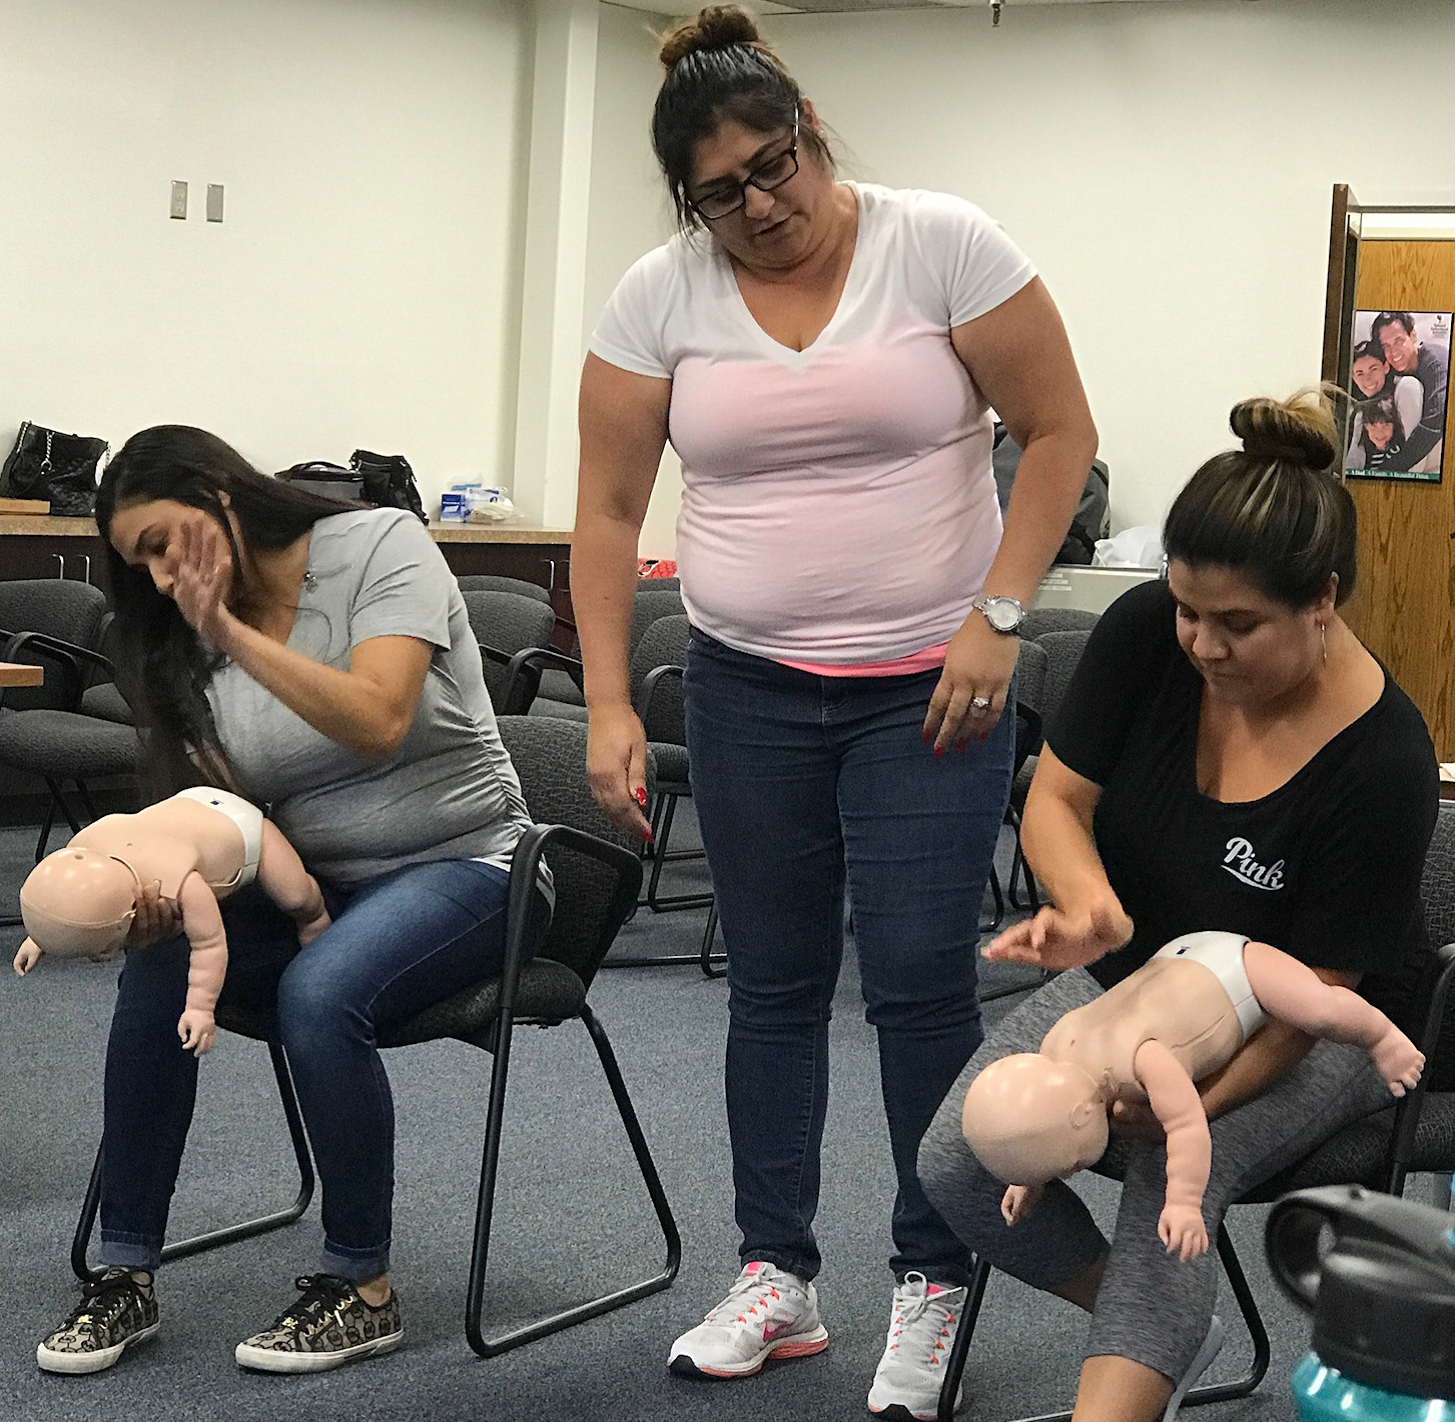 CPR Instructor showing CPR for babies